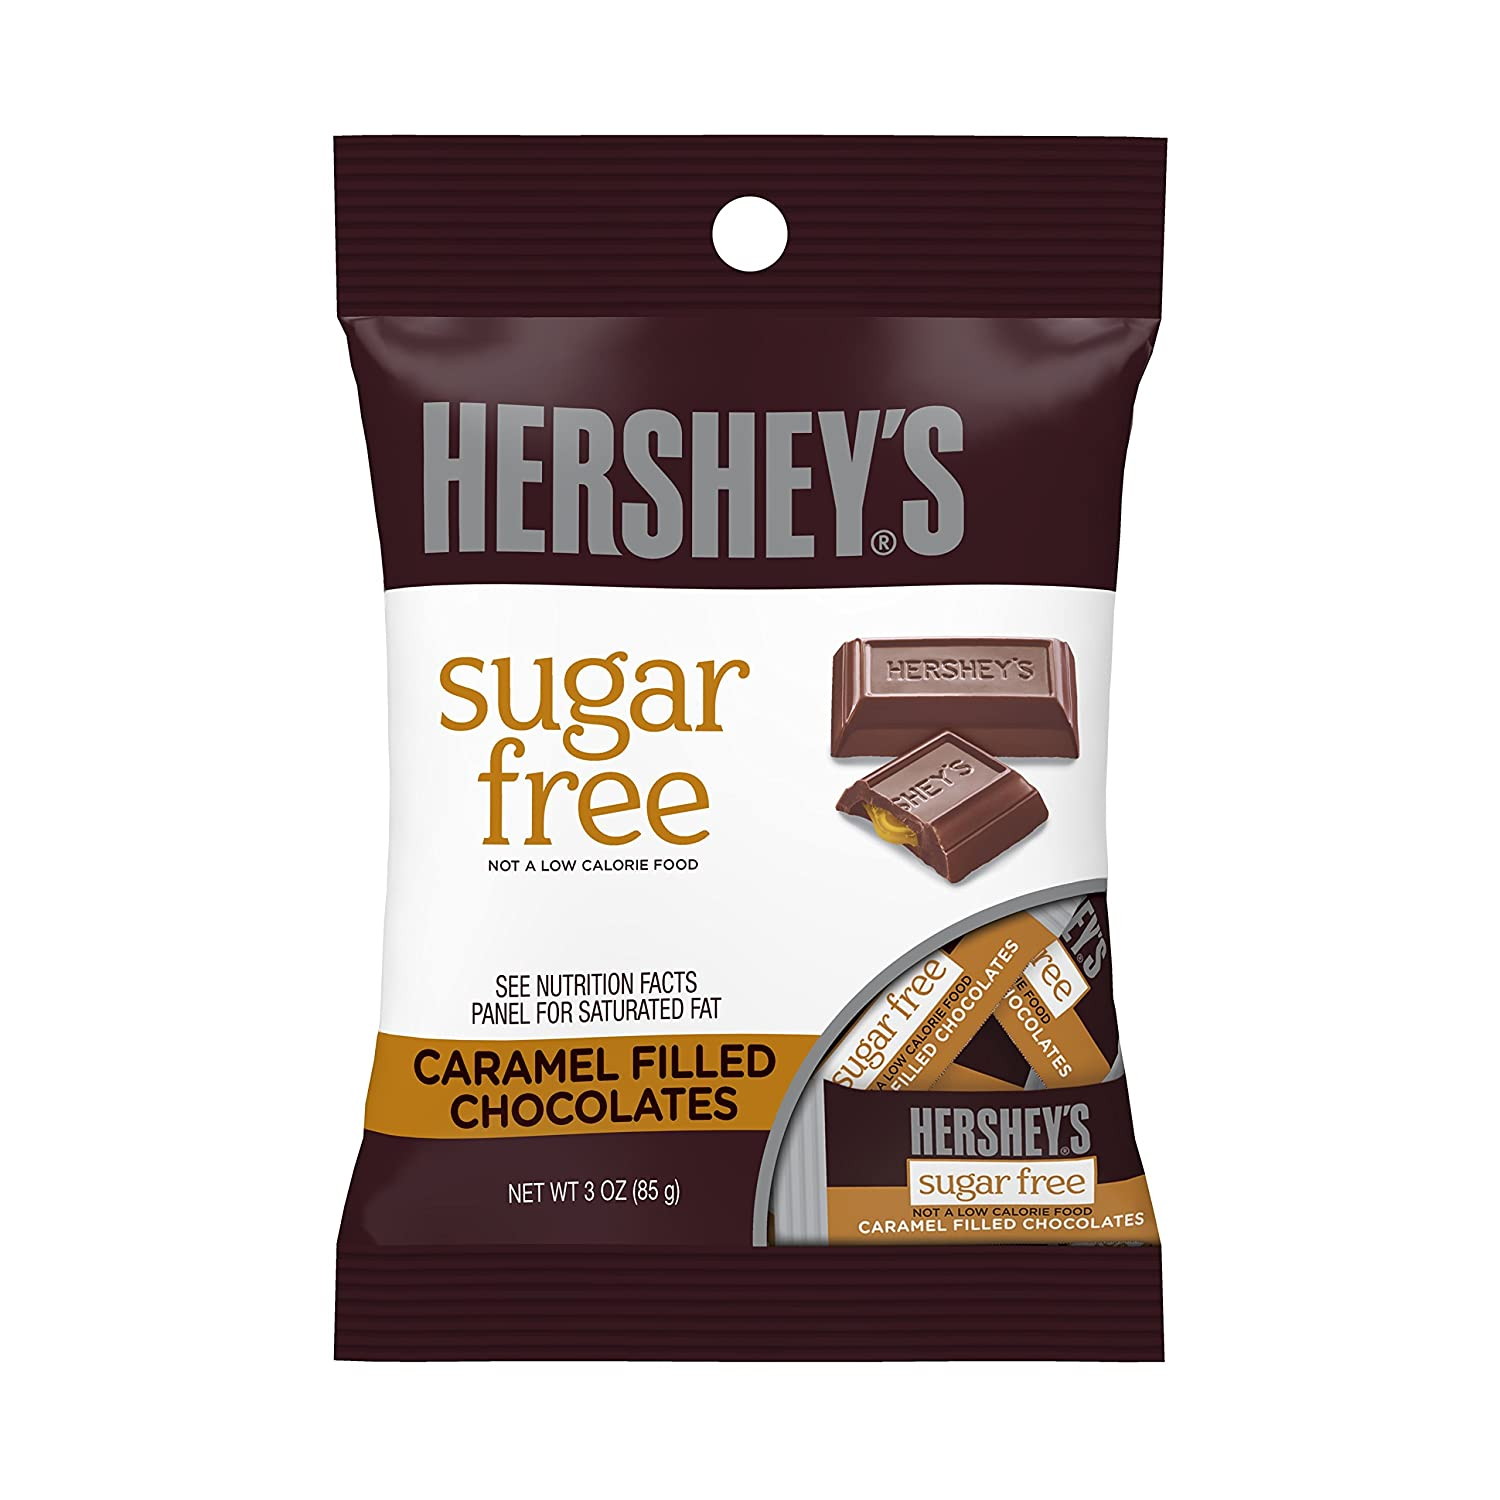 HERSHEY'S Sugar Free Chocolate Candy Bars,